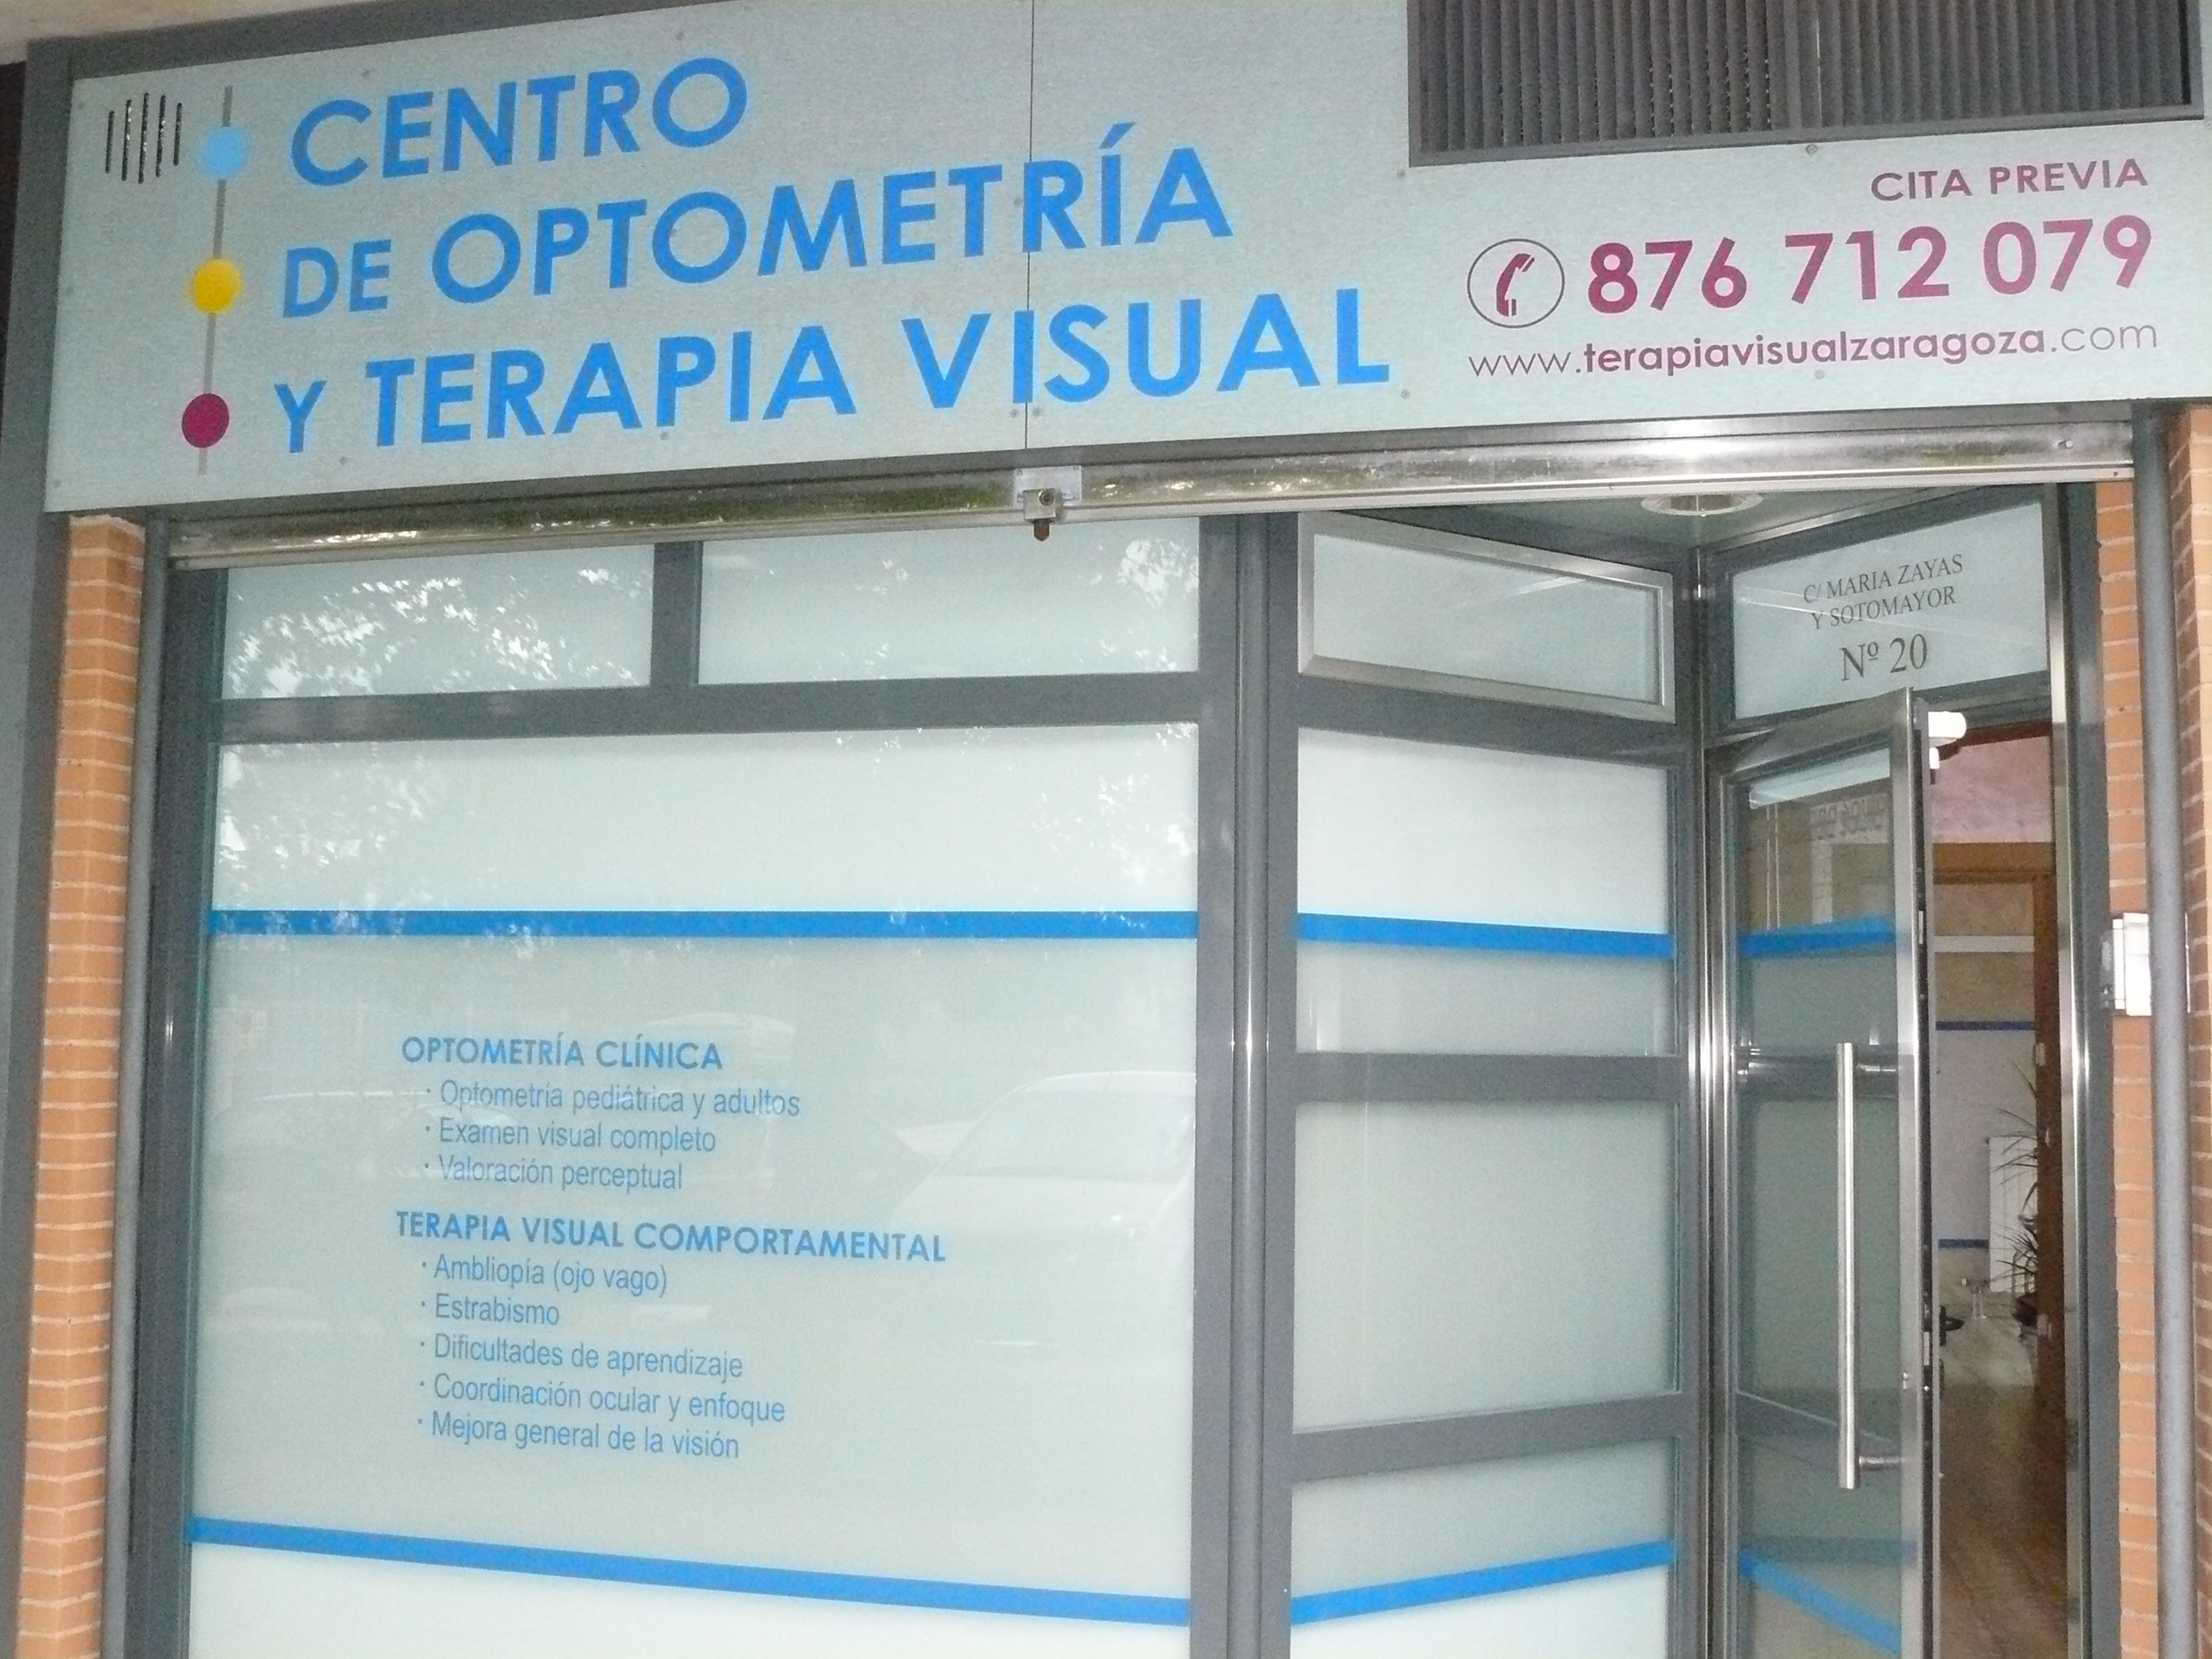 Centro de Optometría y Terapia Visual